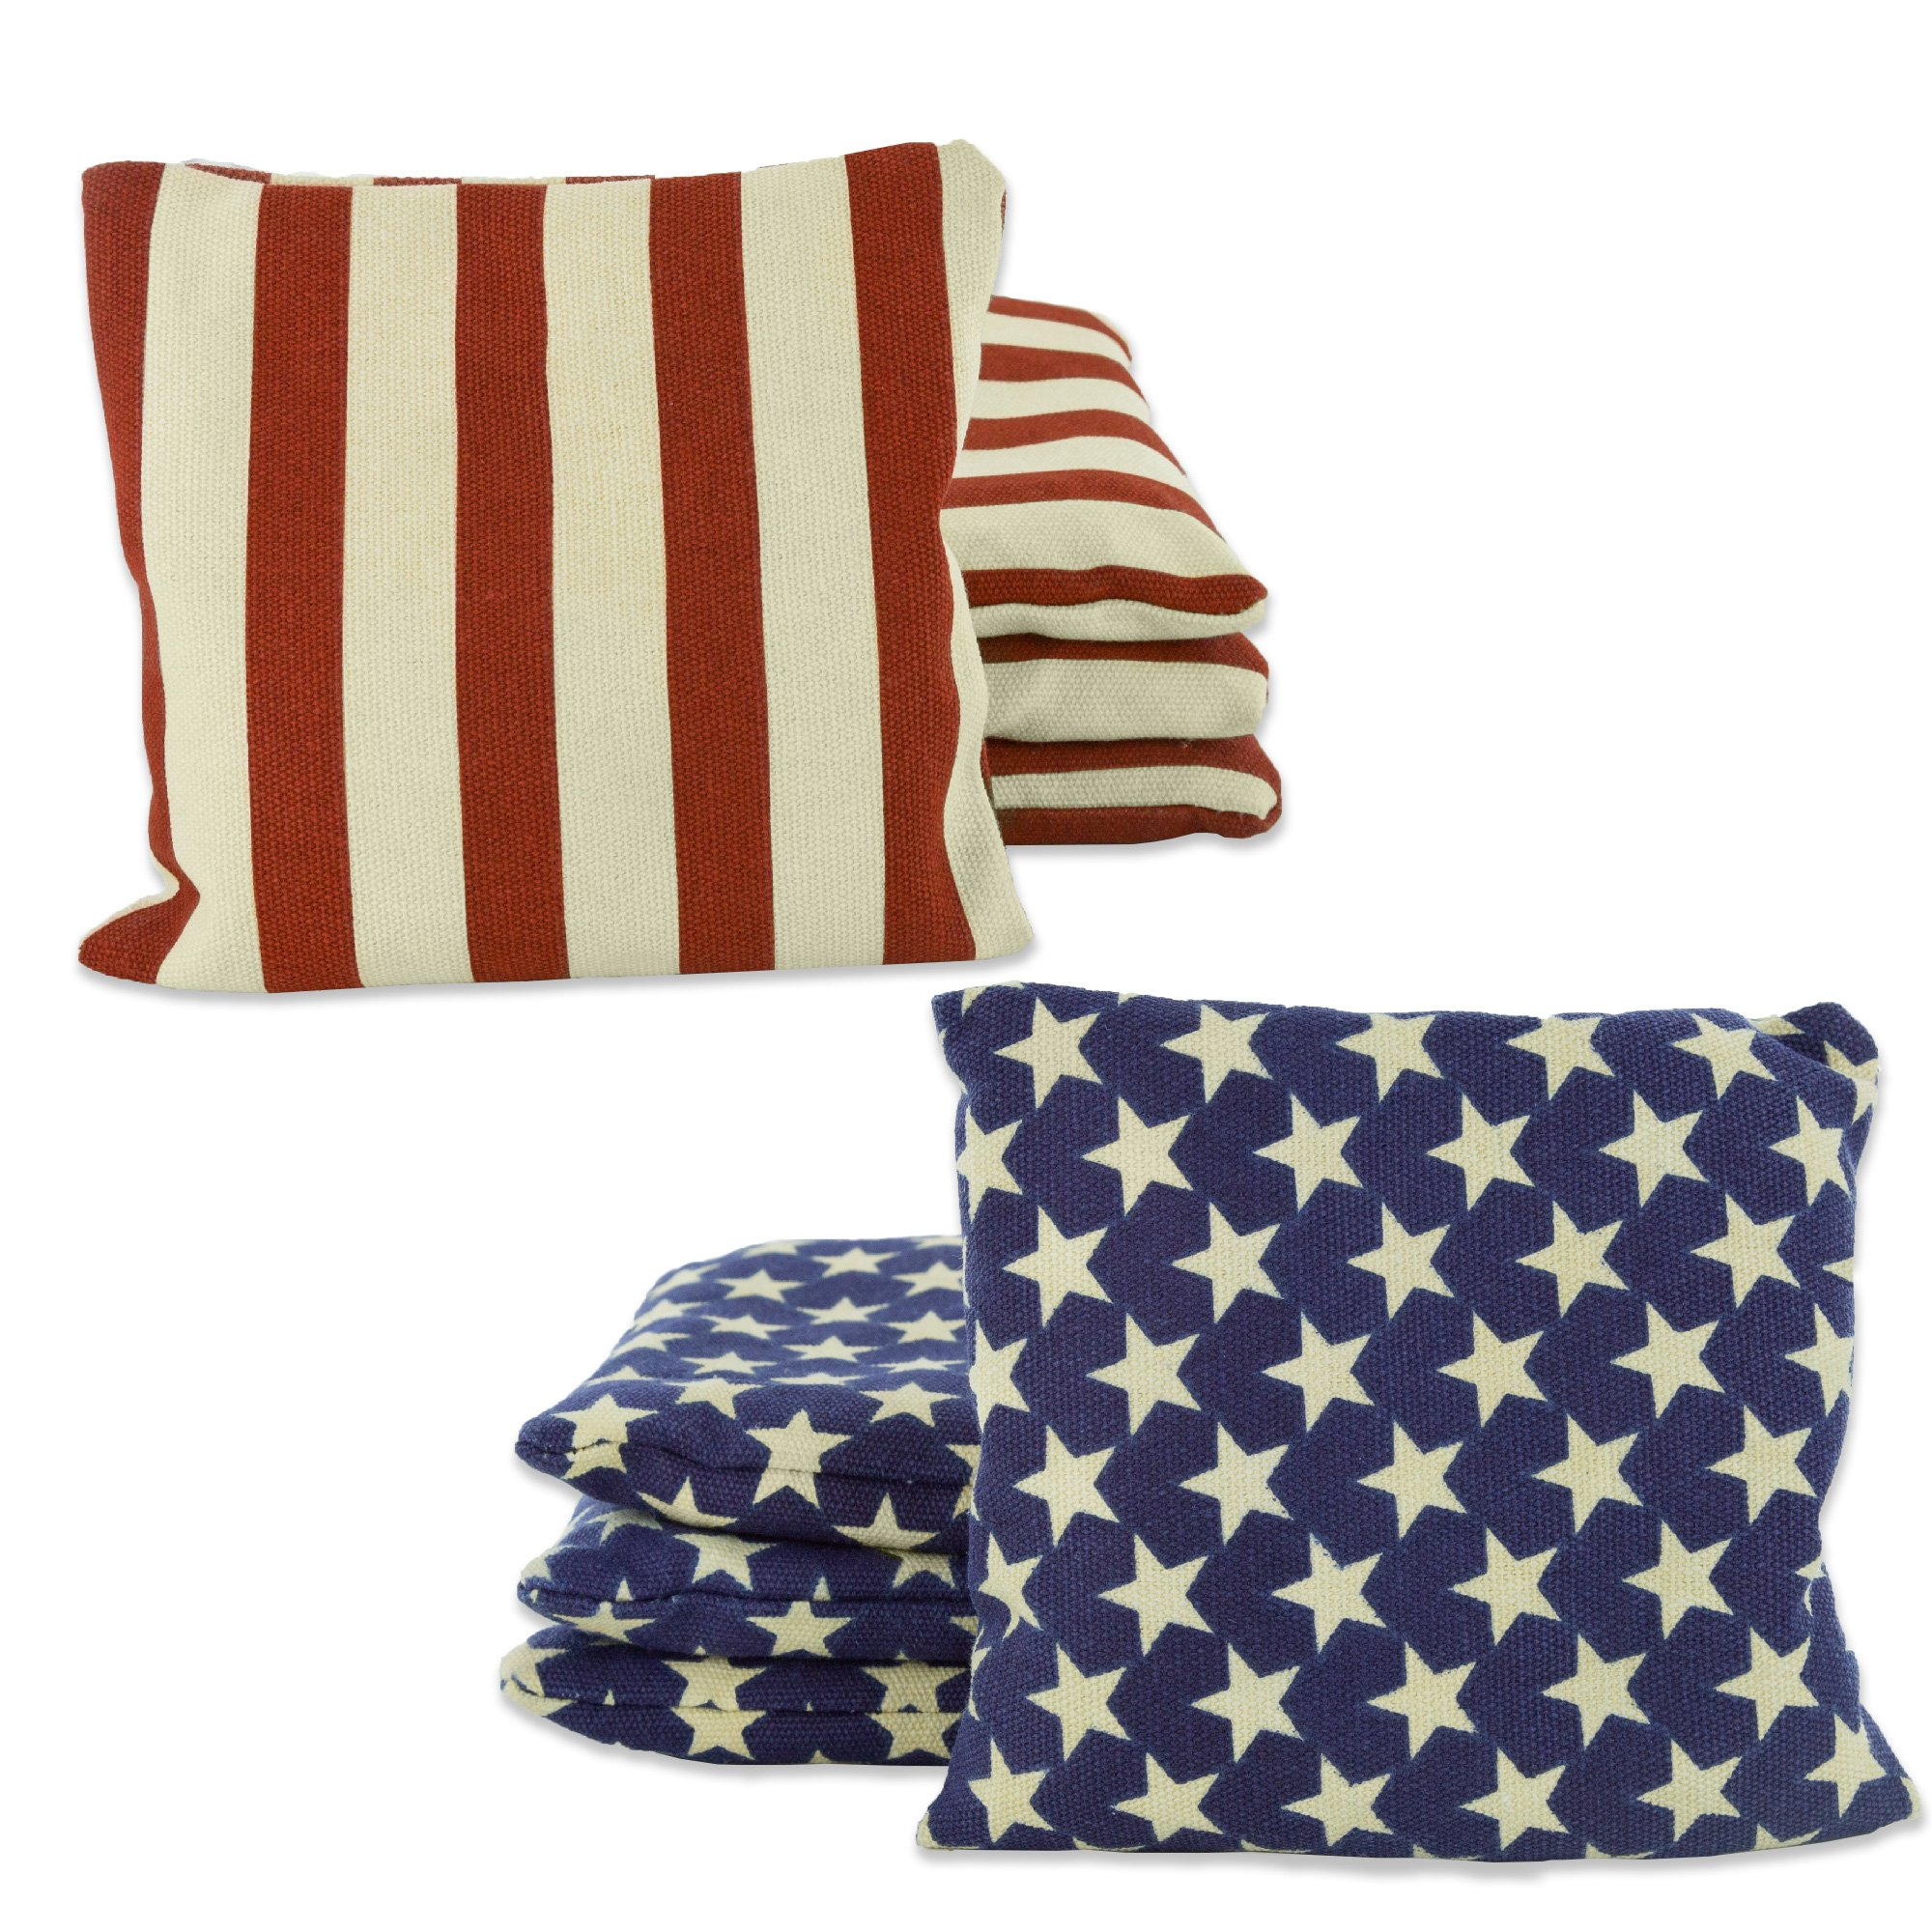 Weather Resistant Cornhole Bean Bags Set of 8 - Duck Cloth - Regulation Size & Weight - Stars and Stripes by Barcaloo